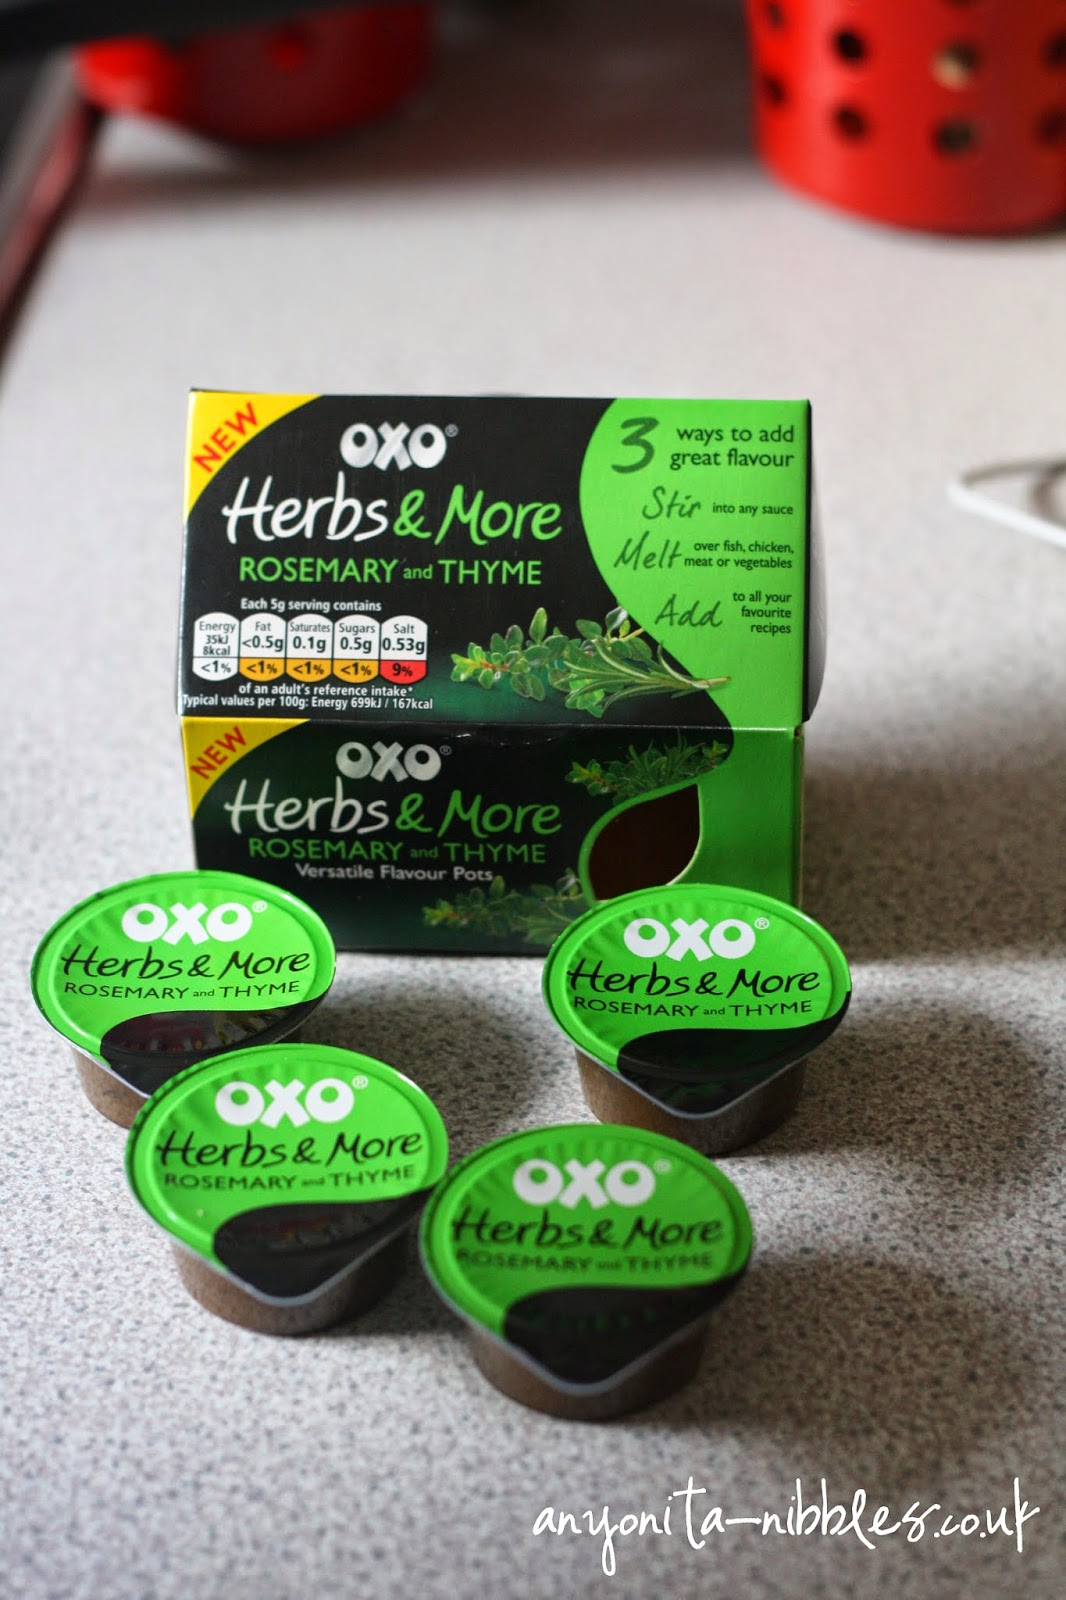 OXO Herbs & More Rosemary & Thyme Flavour Pots from Anyonita-Nibbles.co.uk